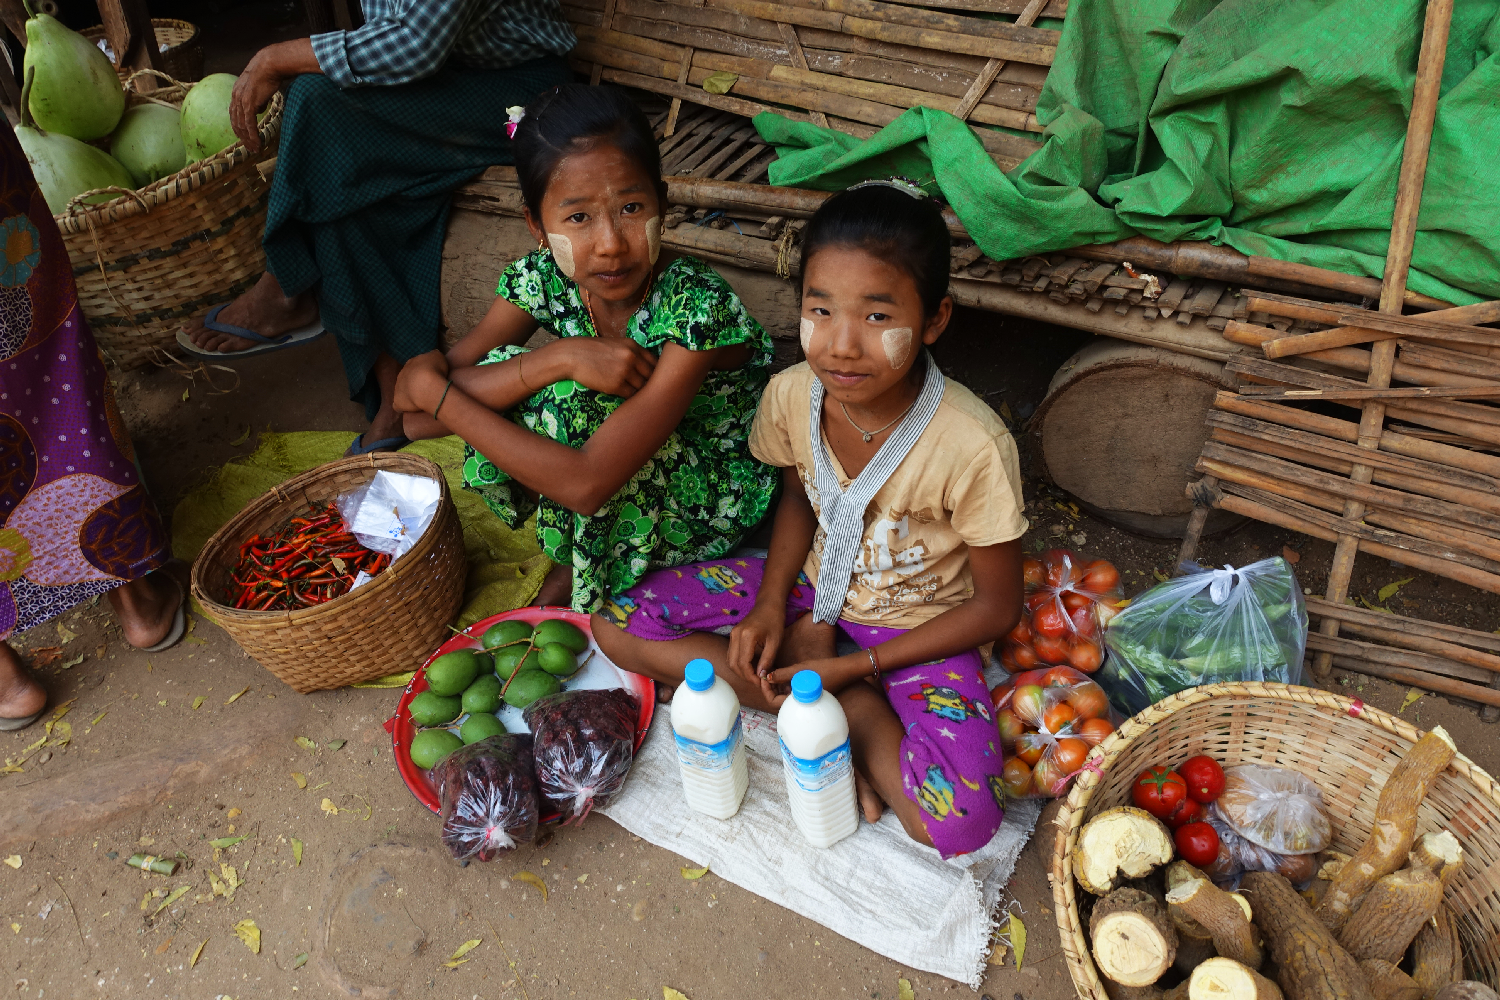 bagan girls market Myanmar